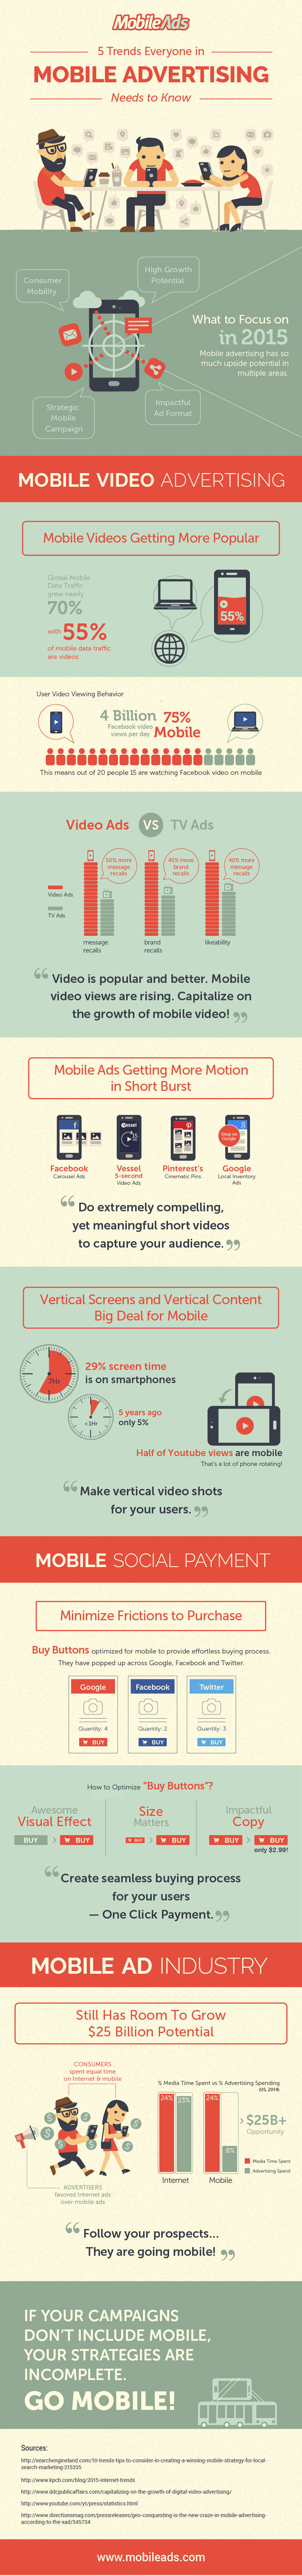 5 Trends Everyone in Mobile Advertising Needs to Know